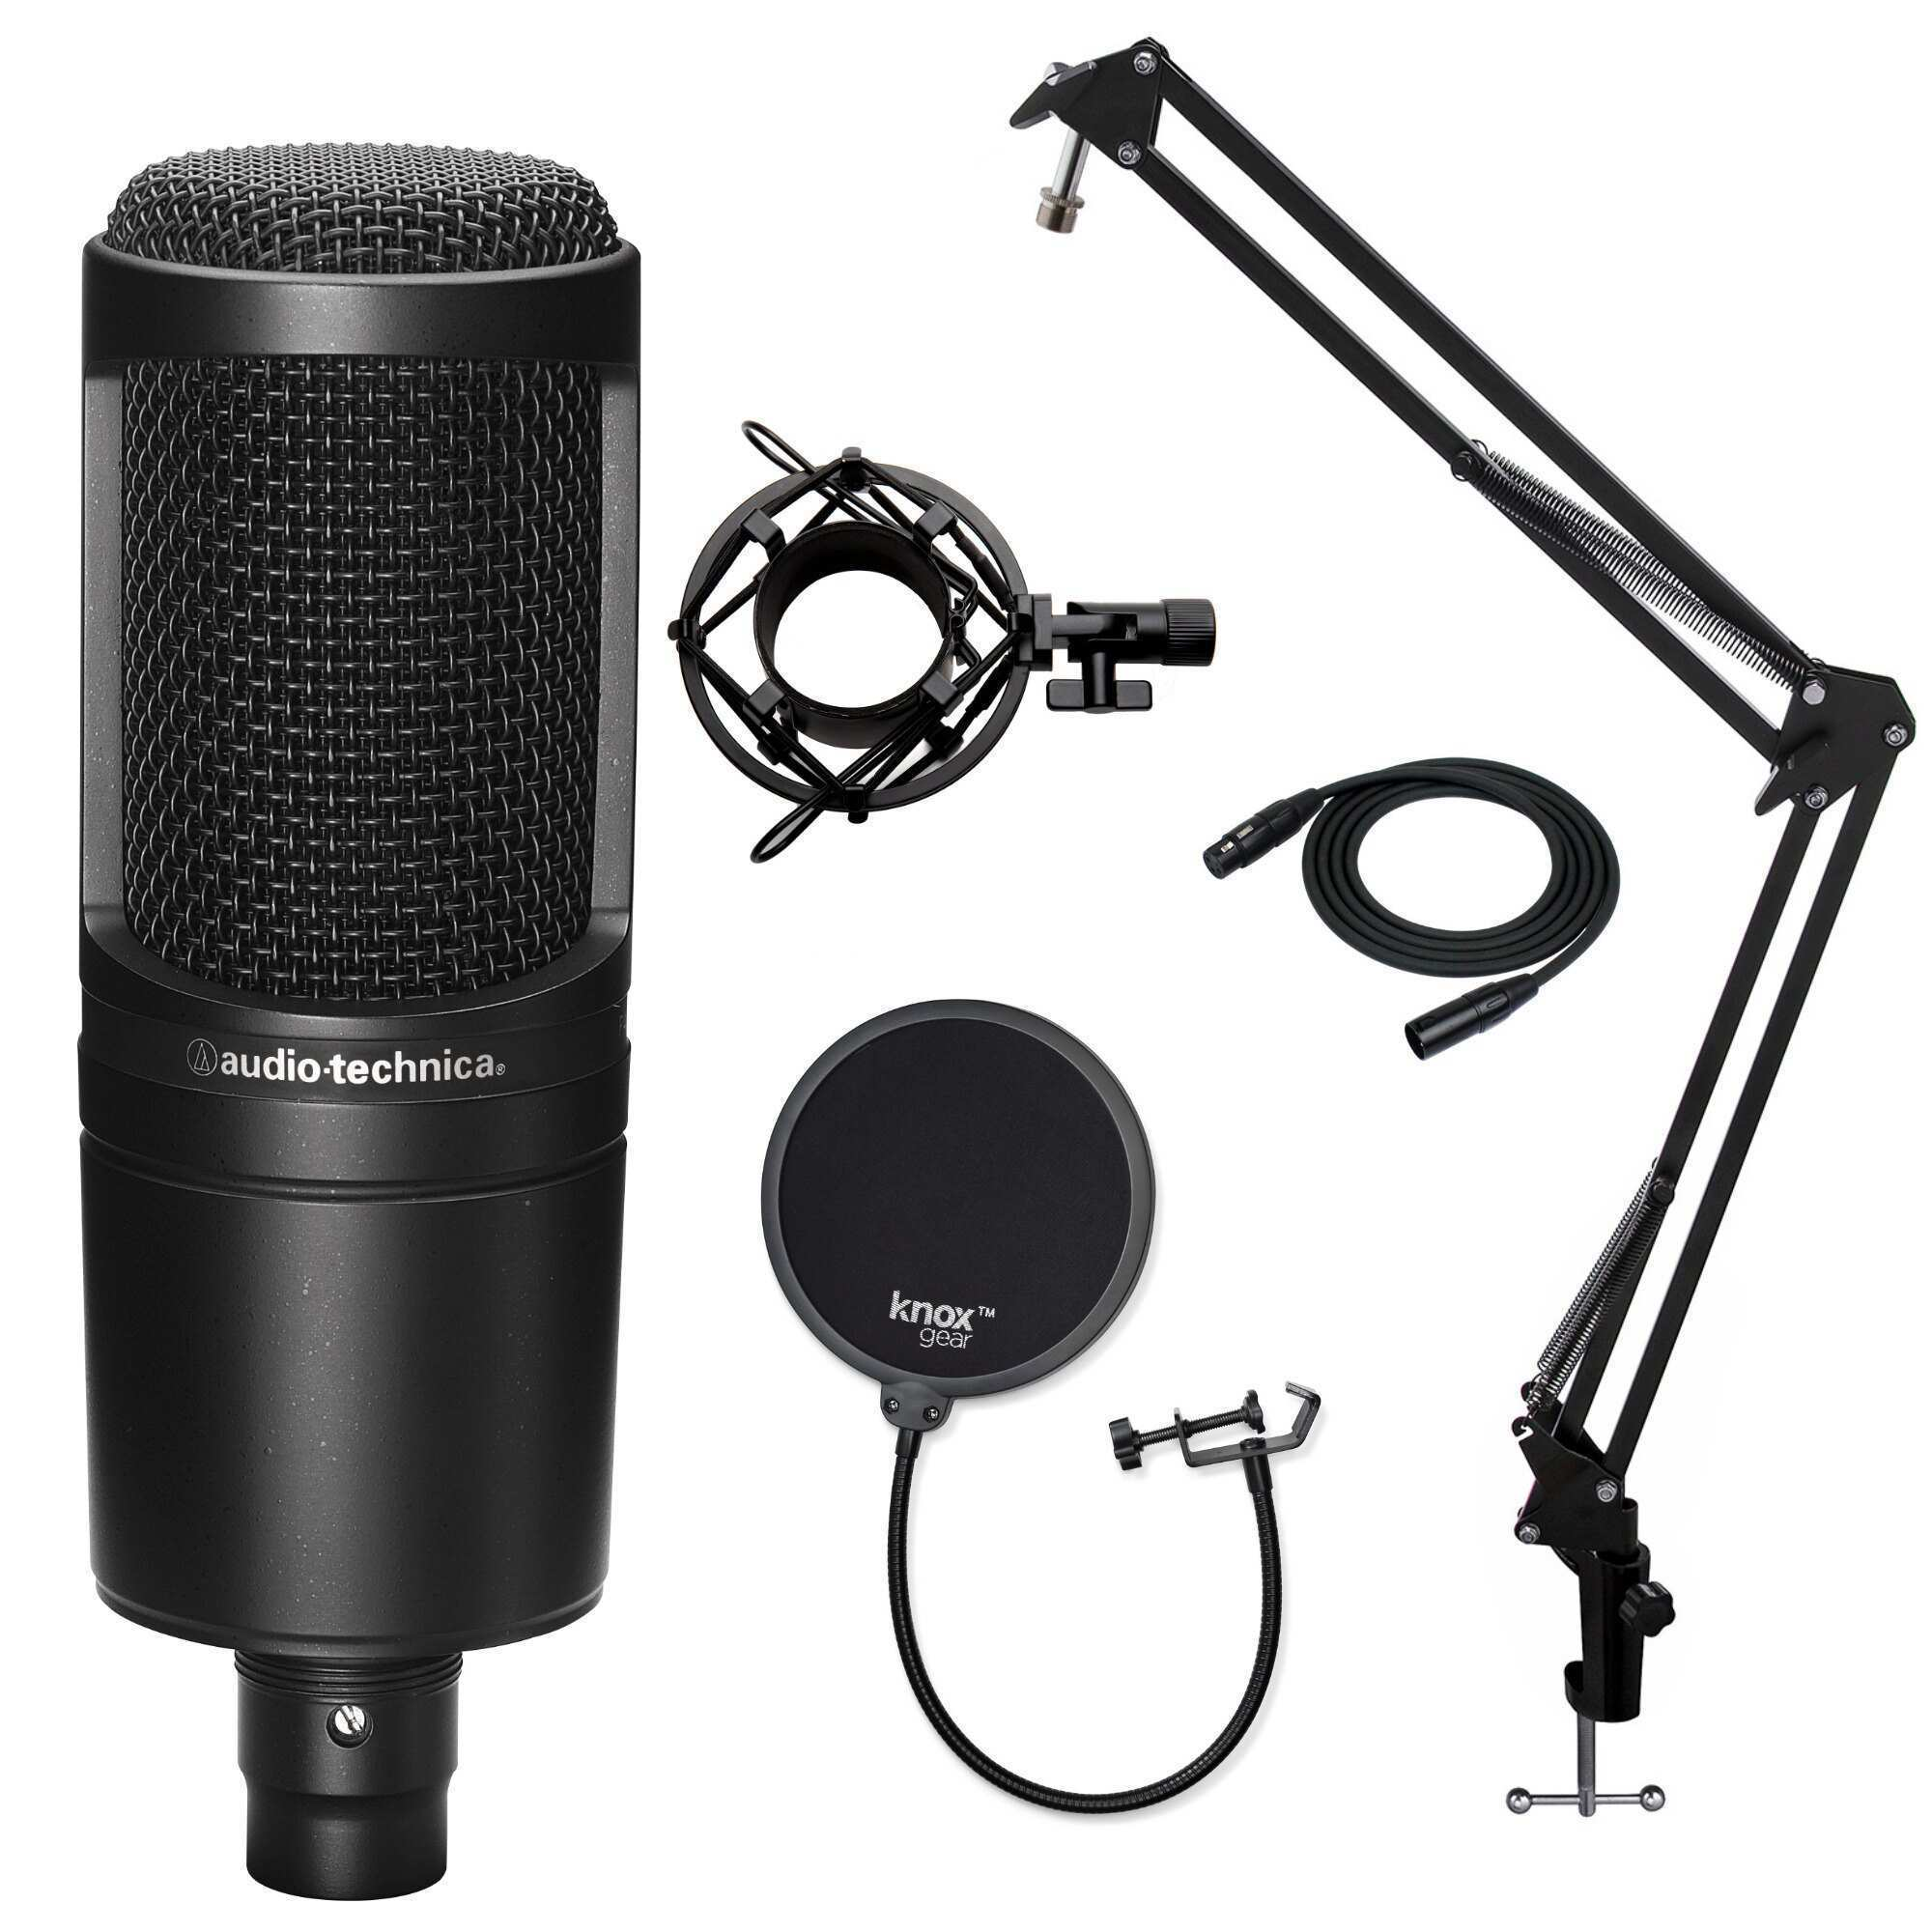 82 All New Audio Technica At2020 Review